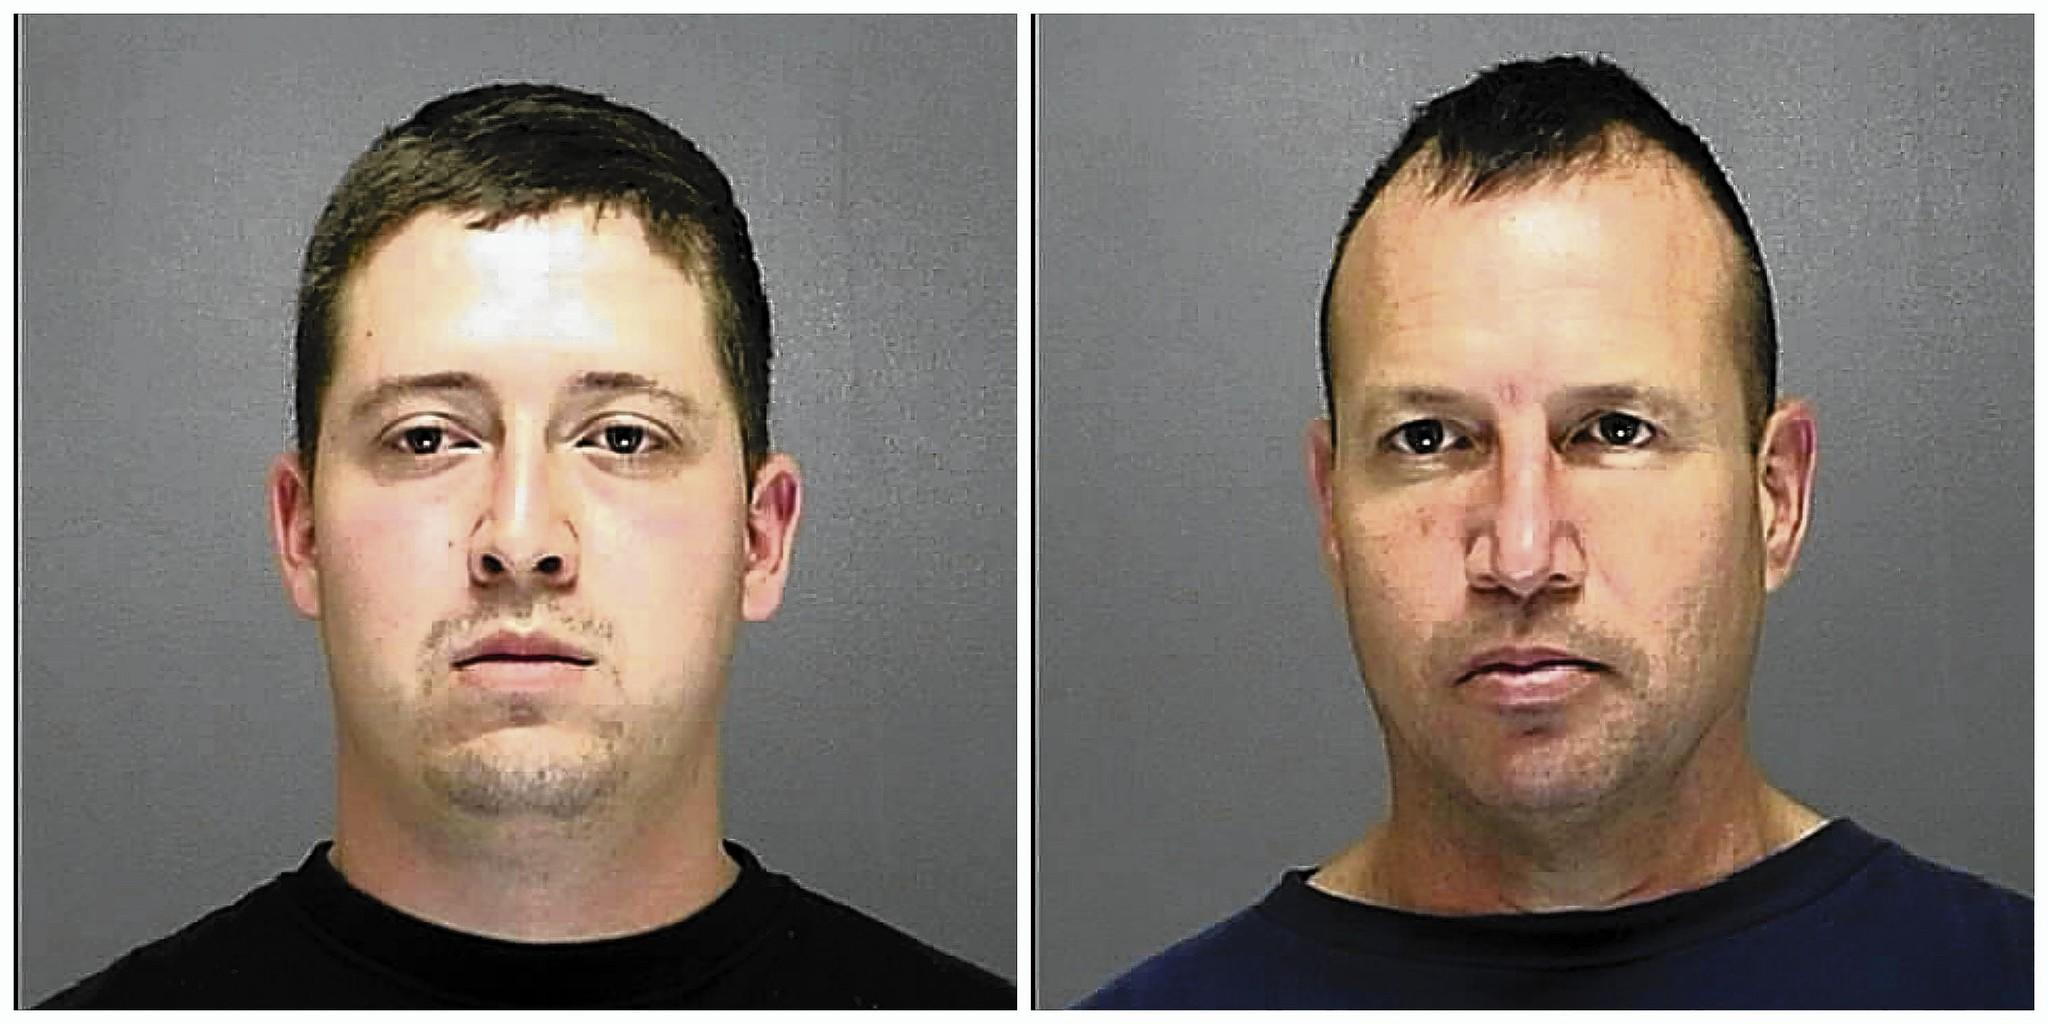 Christopher Suffield Jr., 28, (left) and Christopher Suffiled Sr., 47, were arrested Jan. 1, 2014 after a Volusia deputy saw them stealing a $10,000 generator, the Sheriff's Office said.